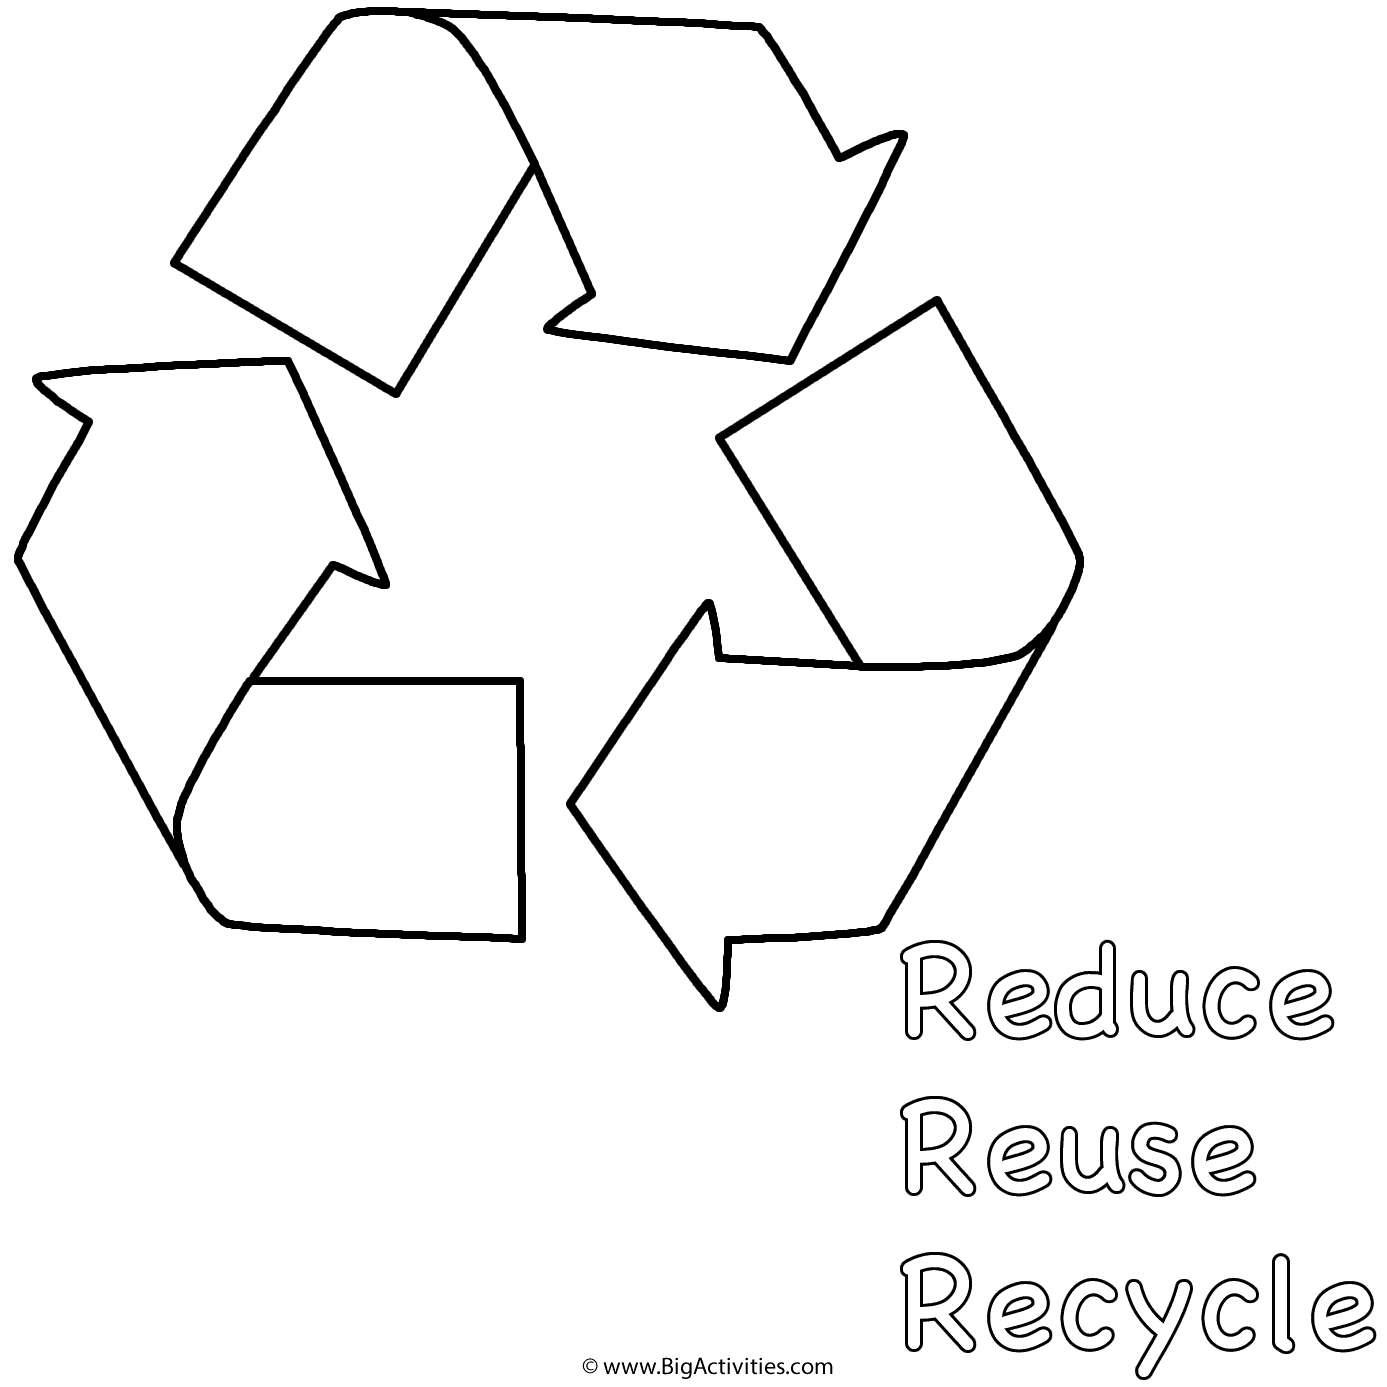 Reduce Reuse Recycle Below Symbol